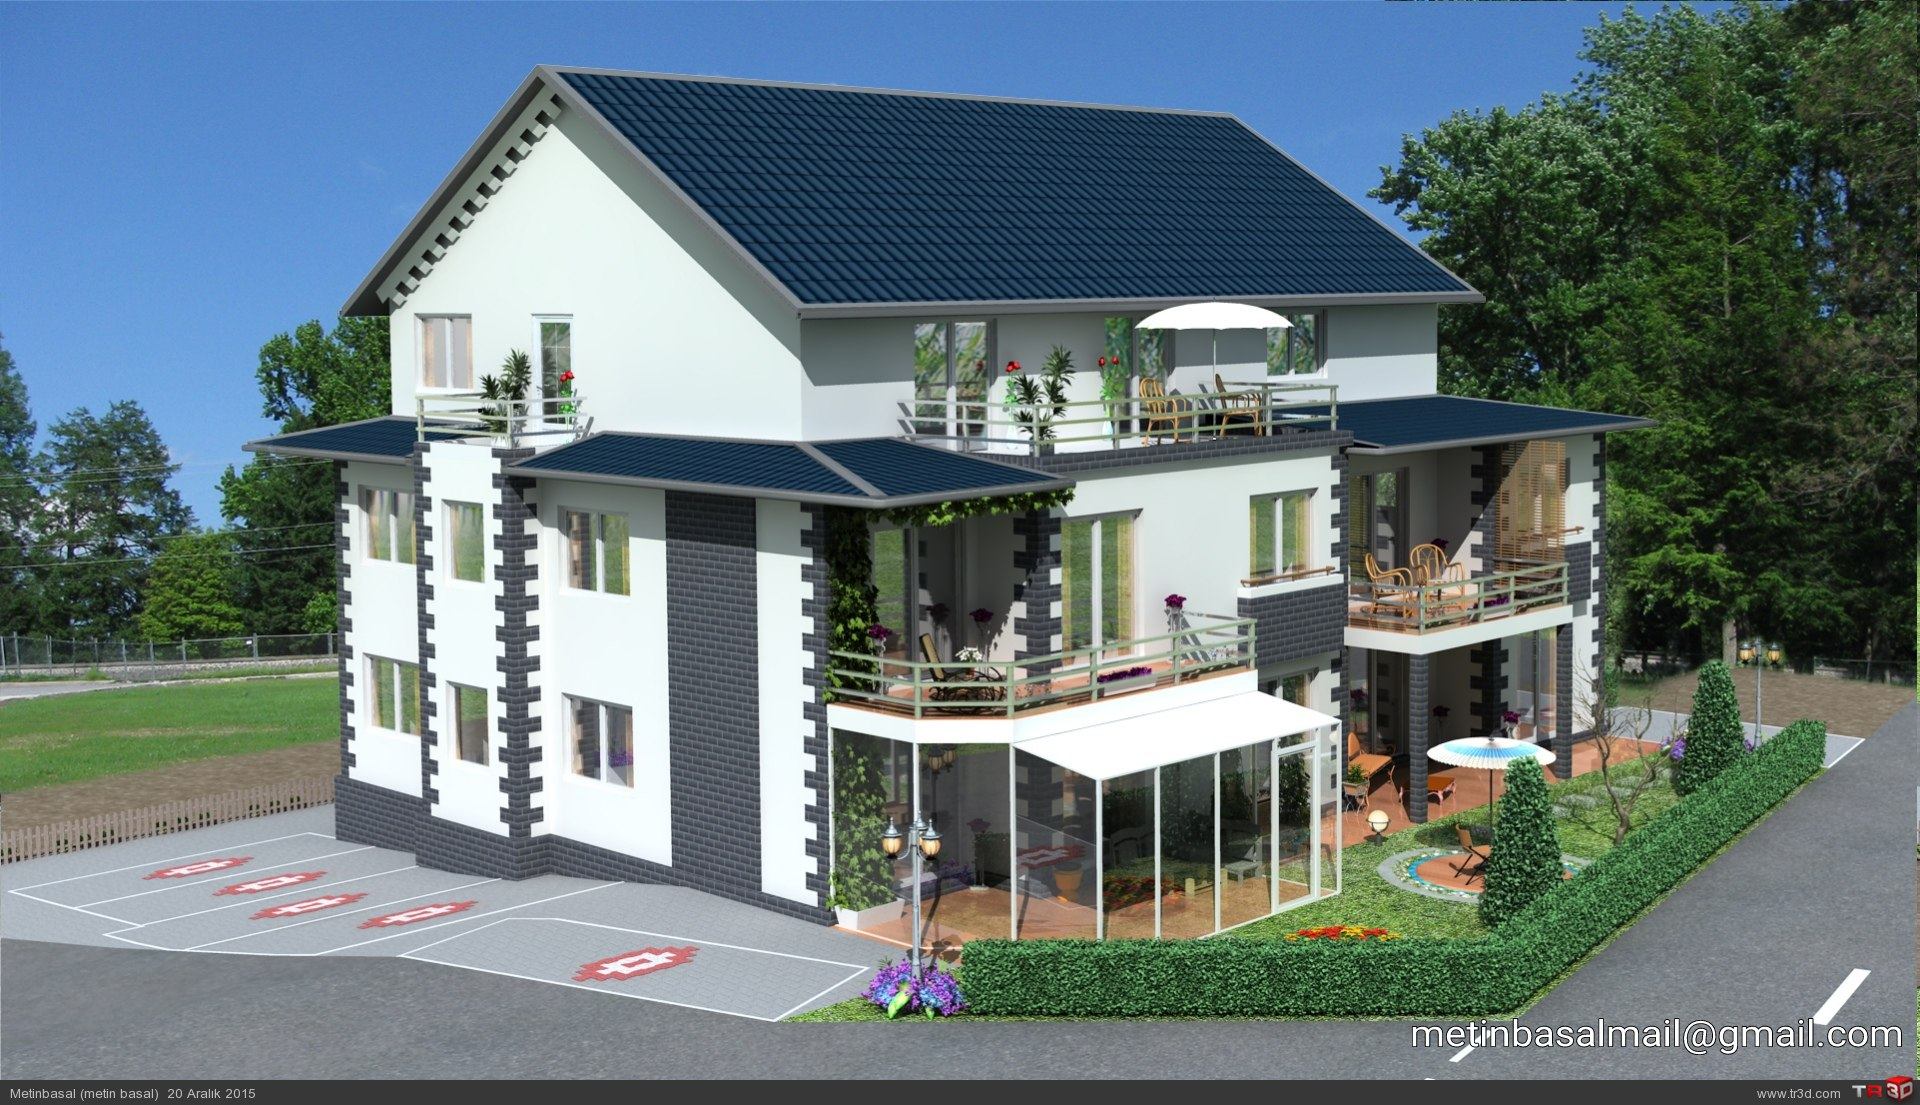 Germany villa modeling and design 2